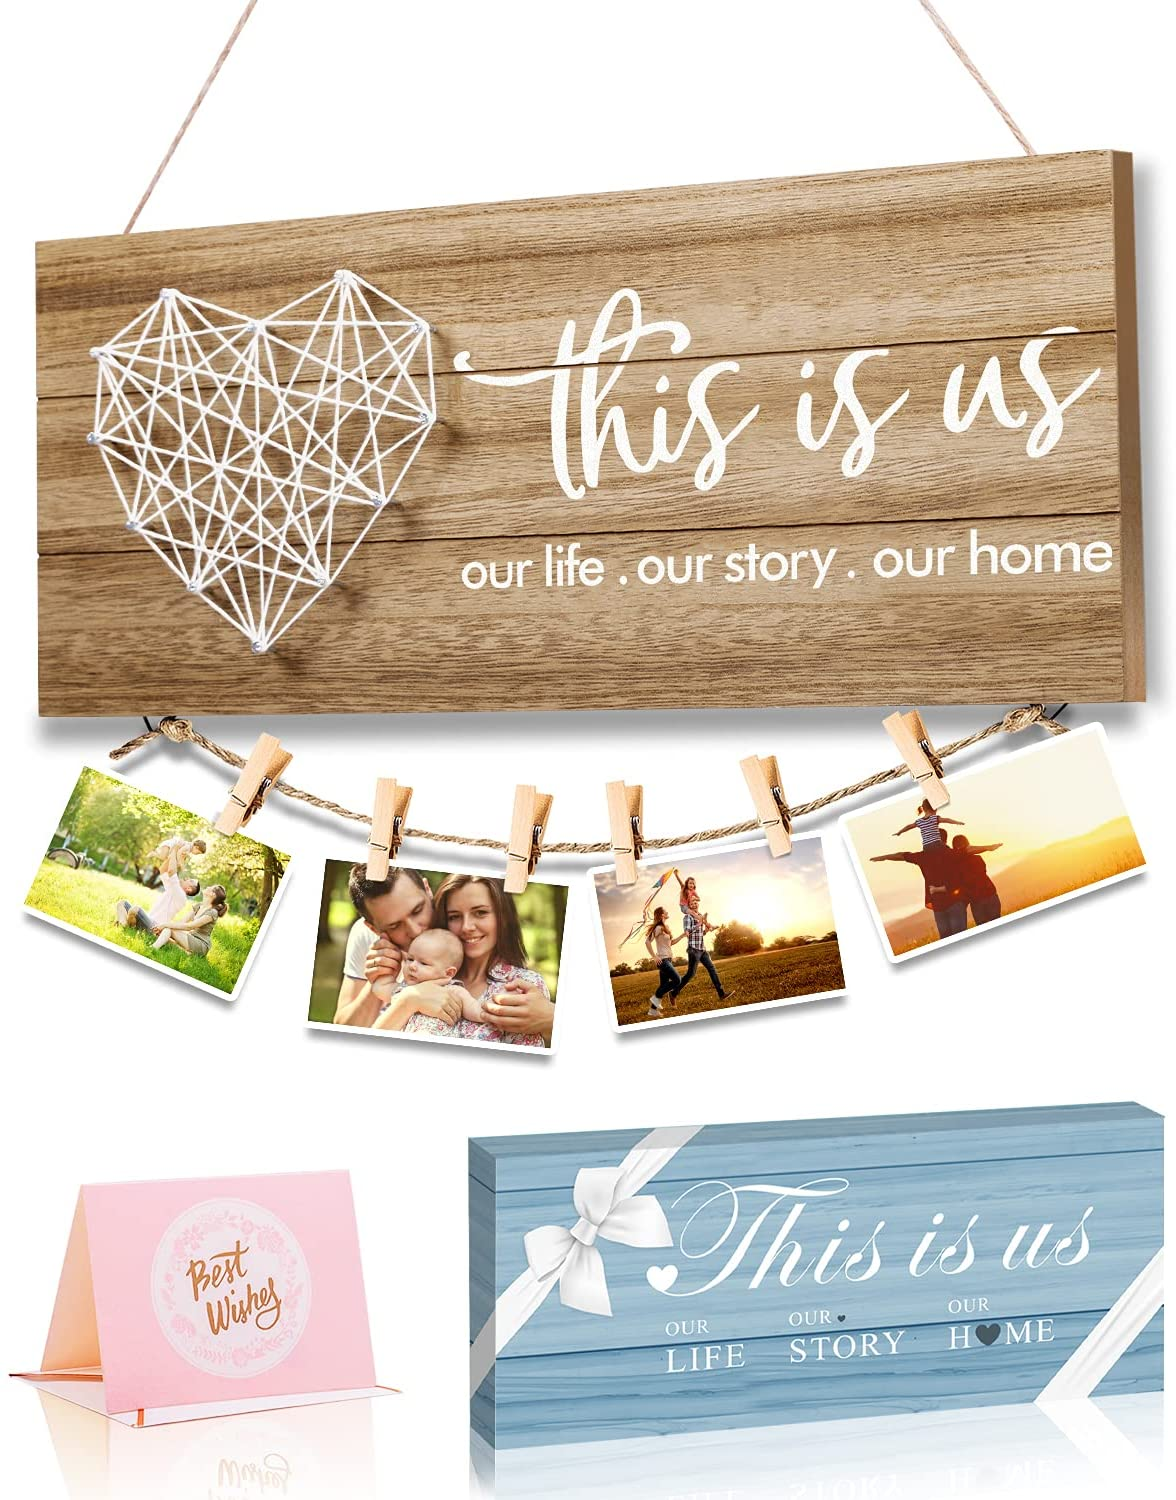 Home Decor New Home Gifts -This is Us- Home Sign for Rustic Farmhouse Wall Living Room with Clips and Twine for Picture Hanging, Gifts for Housewarming New Homeowners (Beech)